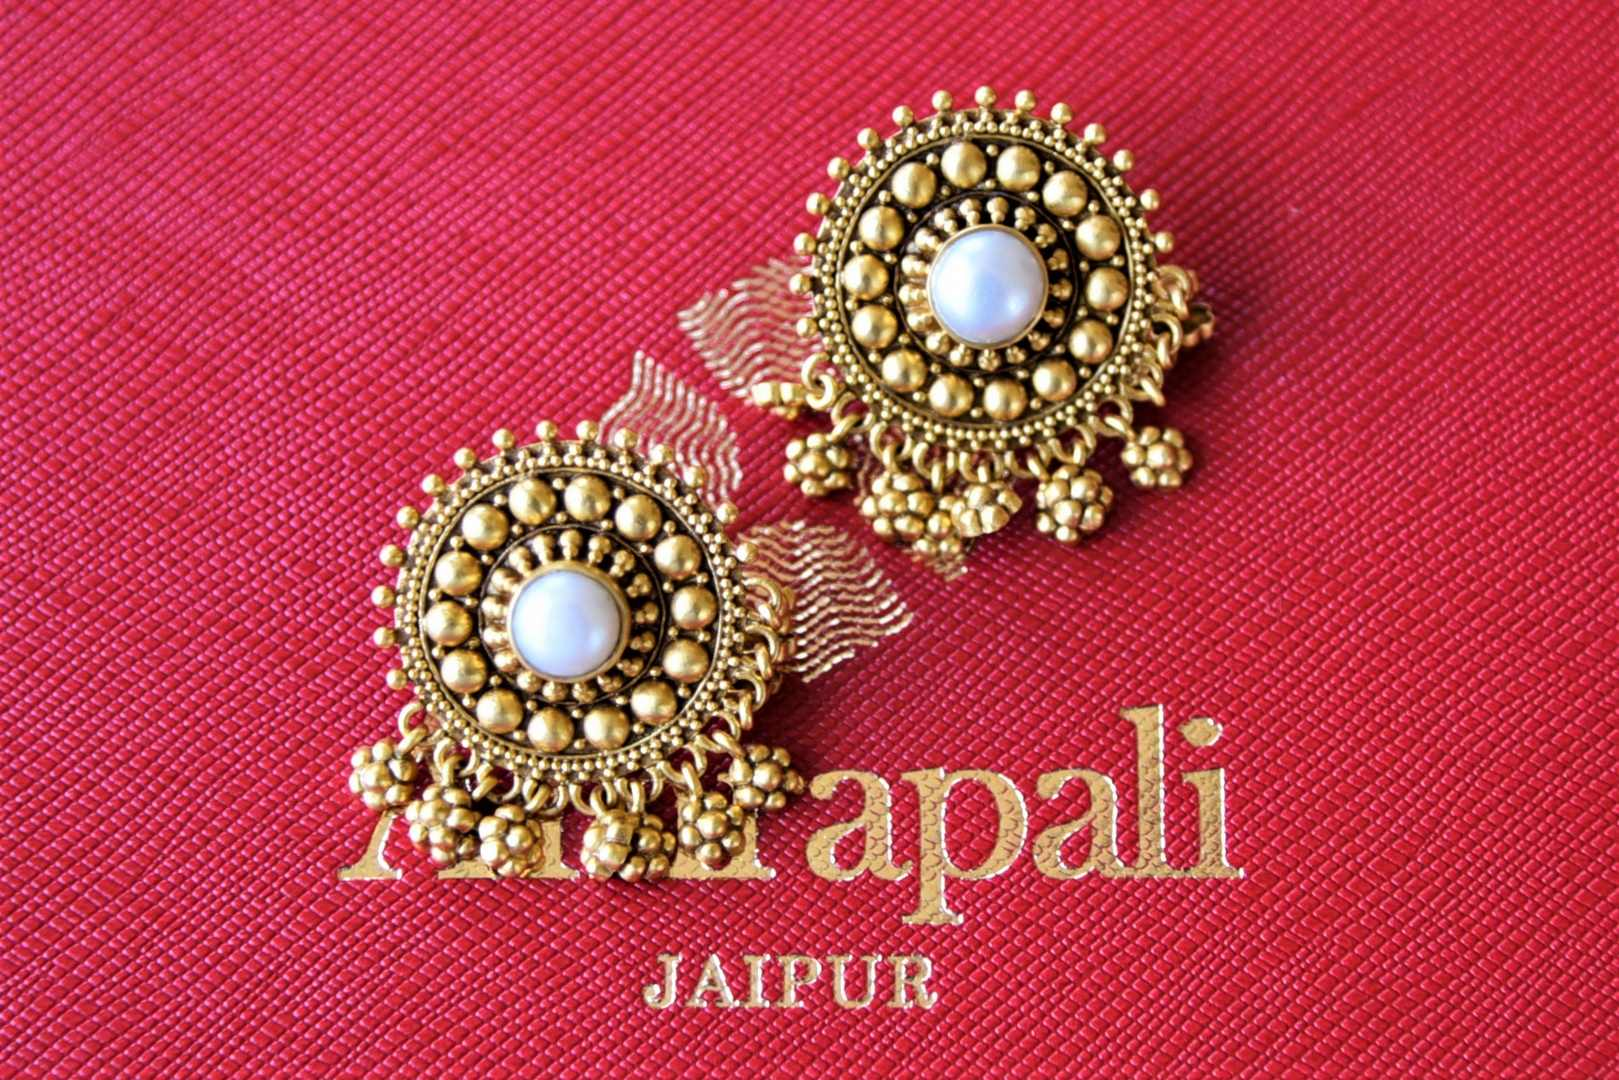 Shop beautiful Amrapali silver gold plated pearl studs online in USA with beads hangings. Elevate your ethnic attires with exquisite Indian jewelry, silver earrings, silver gold plated necklaces from Pure Elegance Indian fashion store in USA.-flatlay